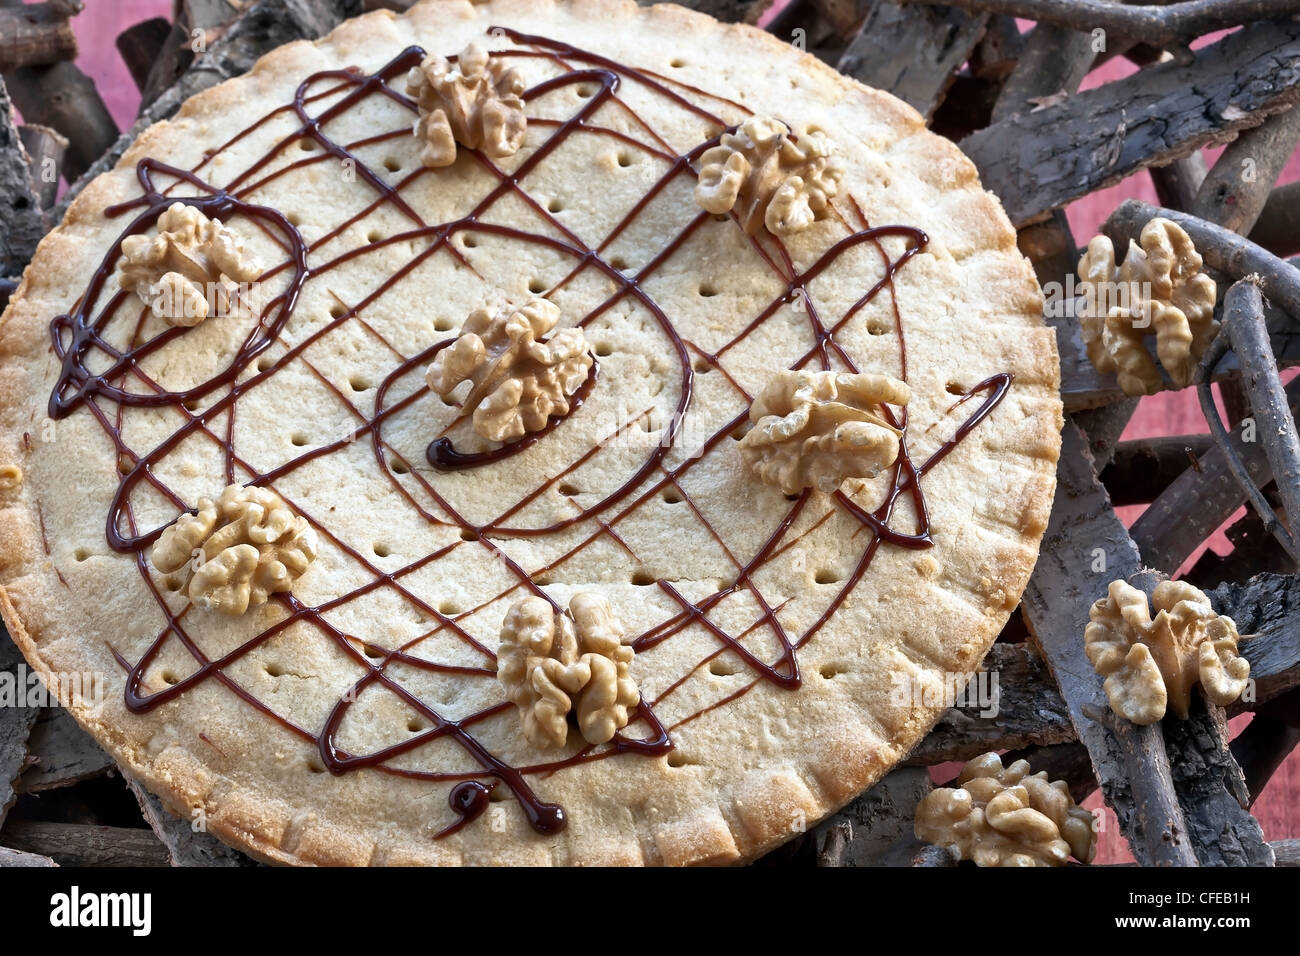 Engadine nut tart - pastry with caramel and walnuts - Stock Image